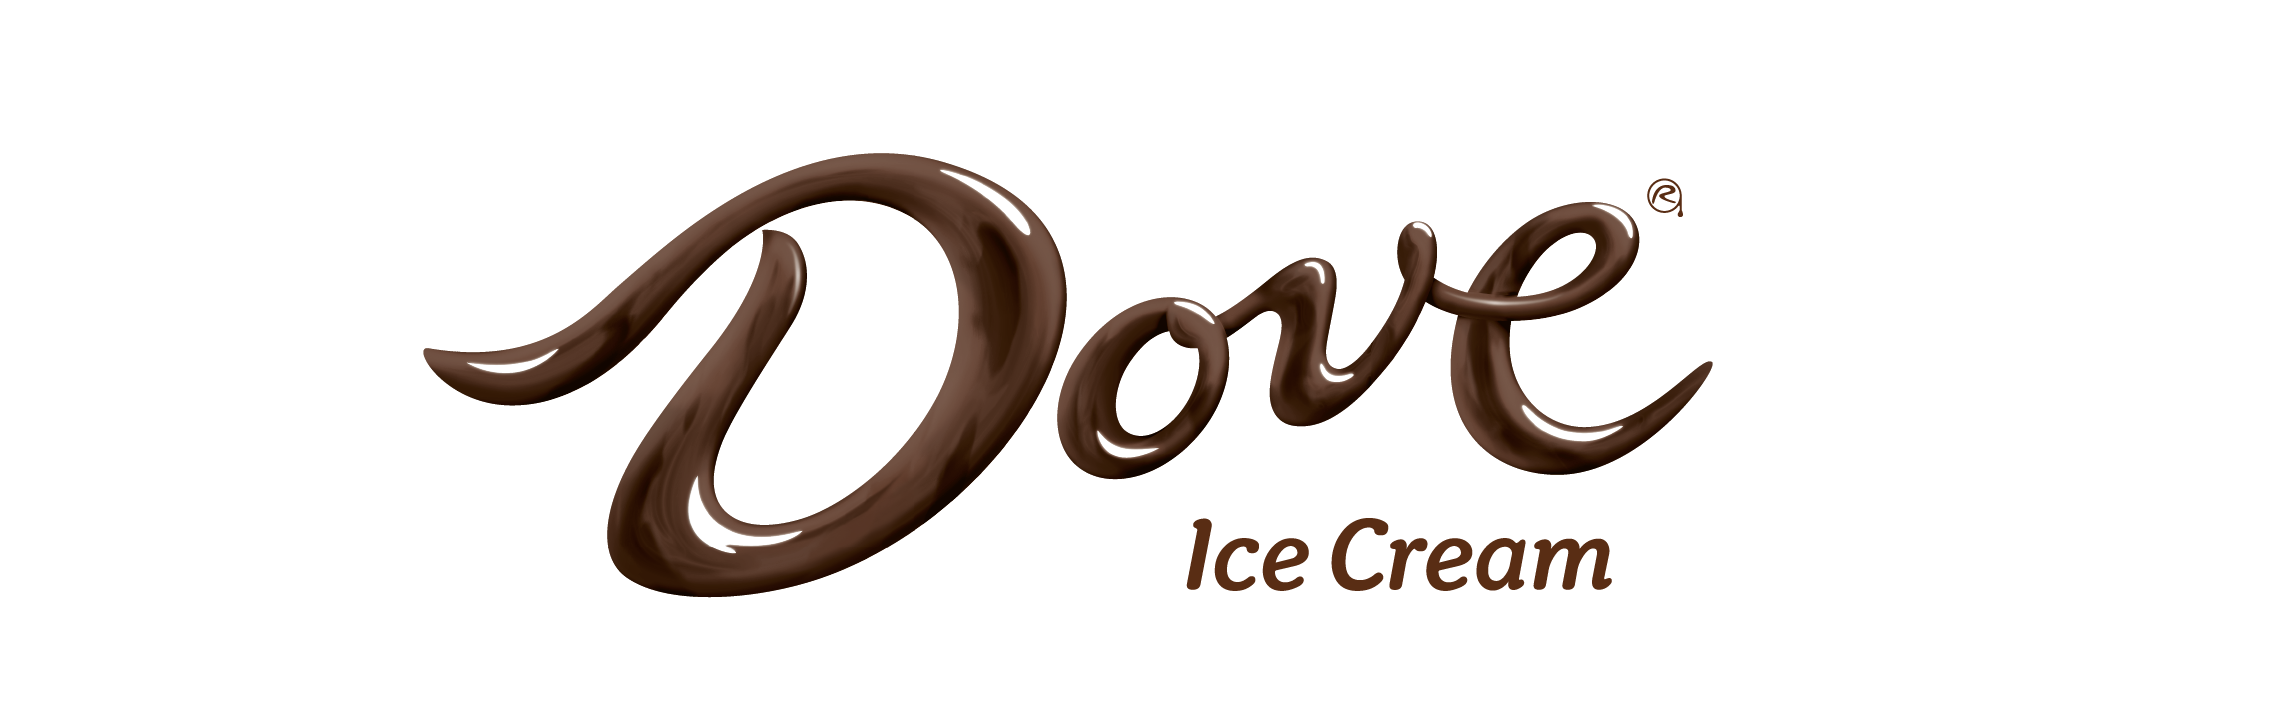 Dove Ice Cream Logo 2019